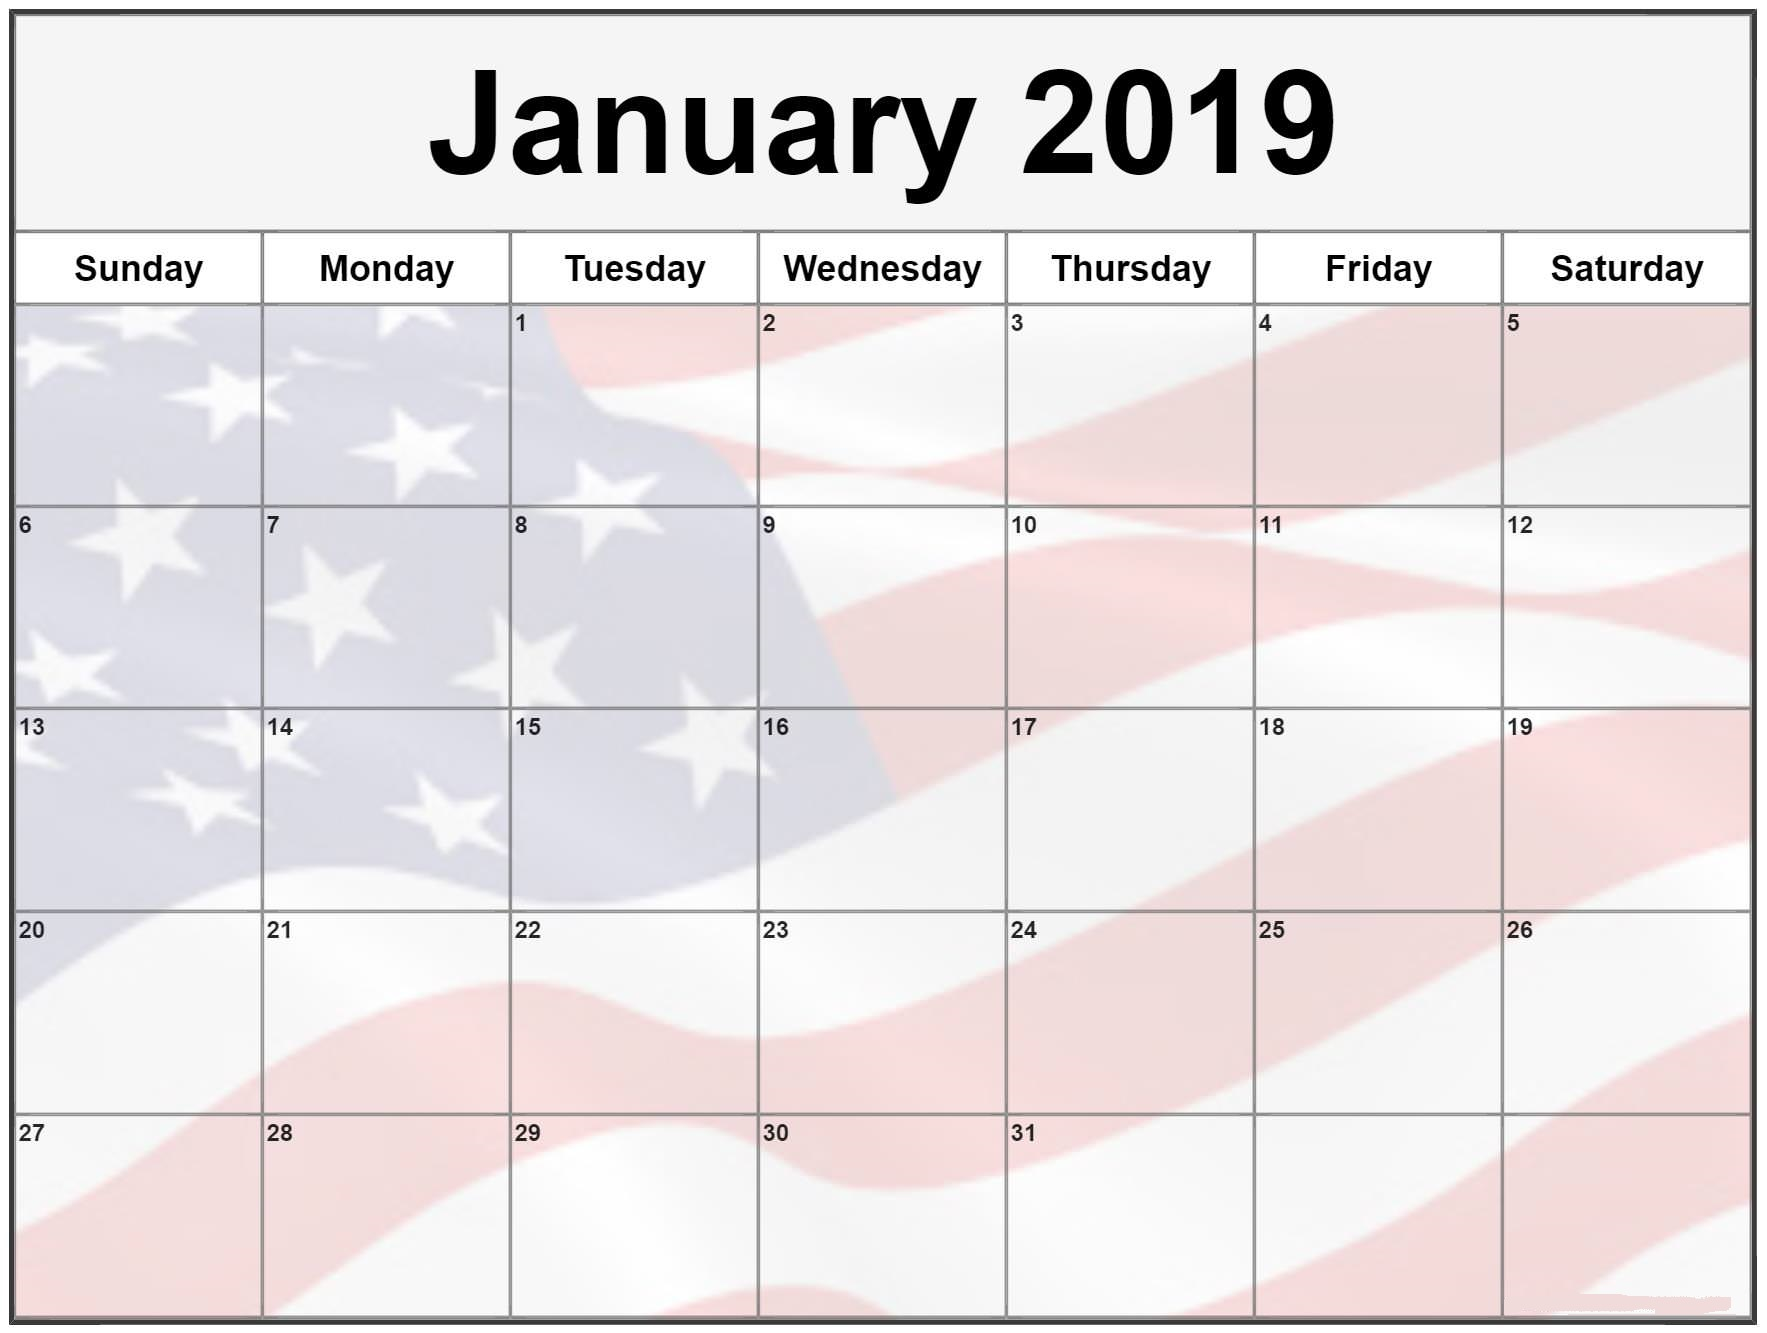 Calendar January 2019 With Holidays Templates